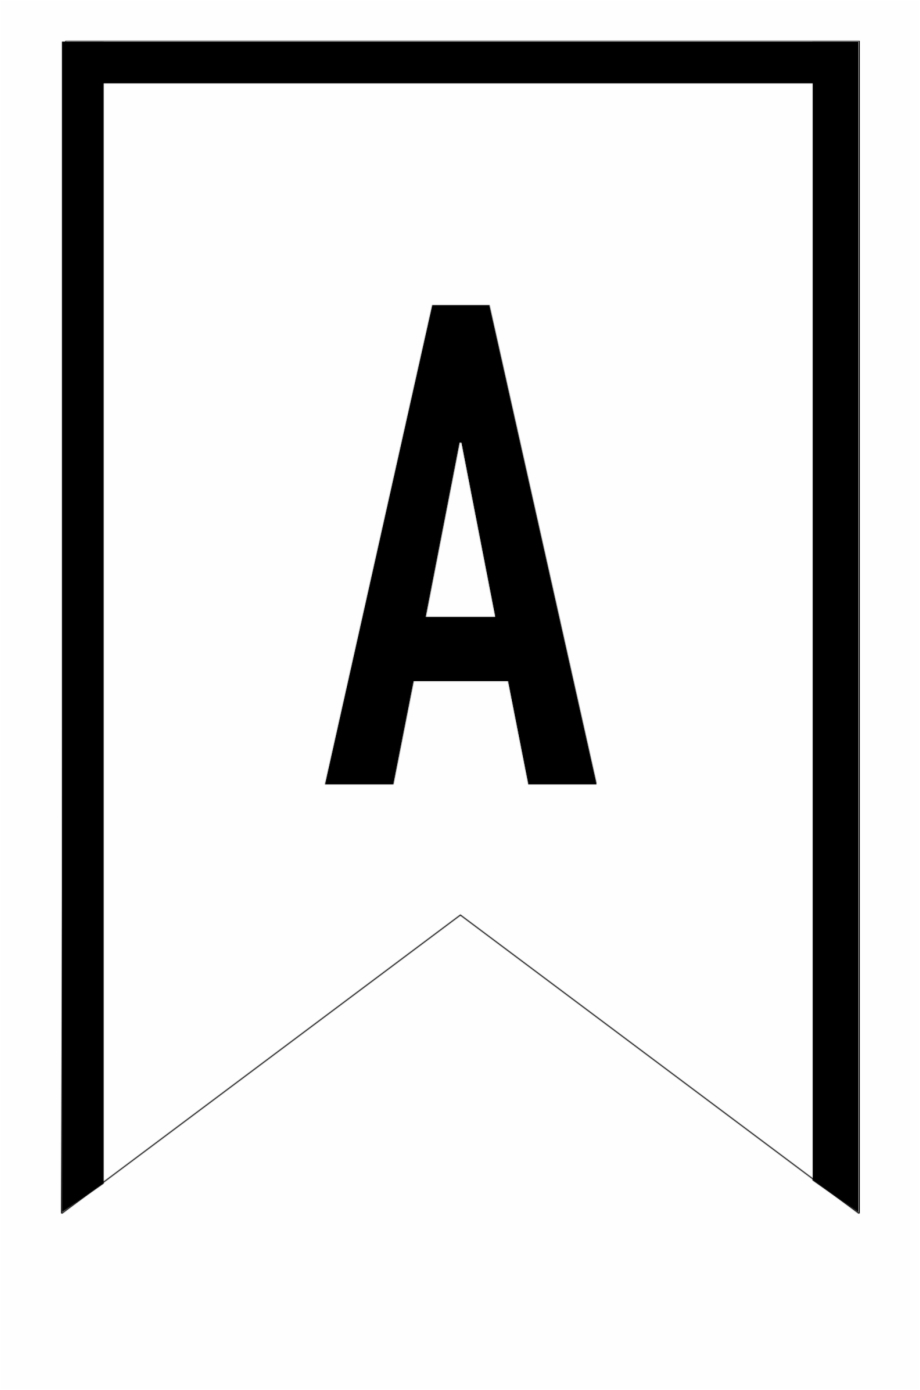 Banner Templates Free Printable Abc Letters - Printable With Regard To Free Letter Templates For Banners